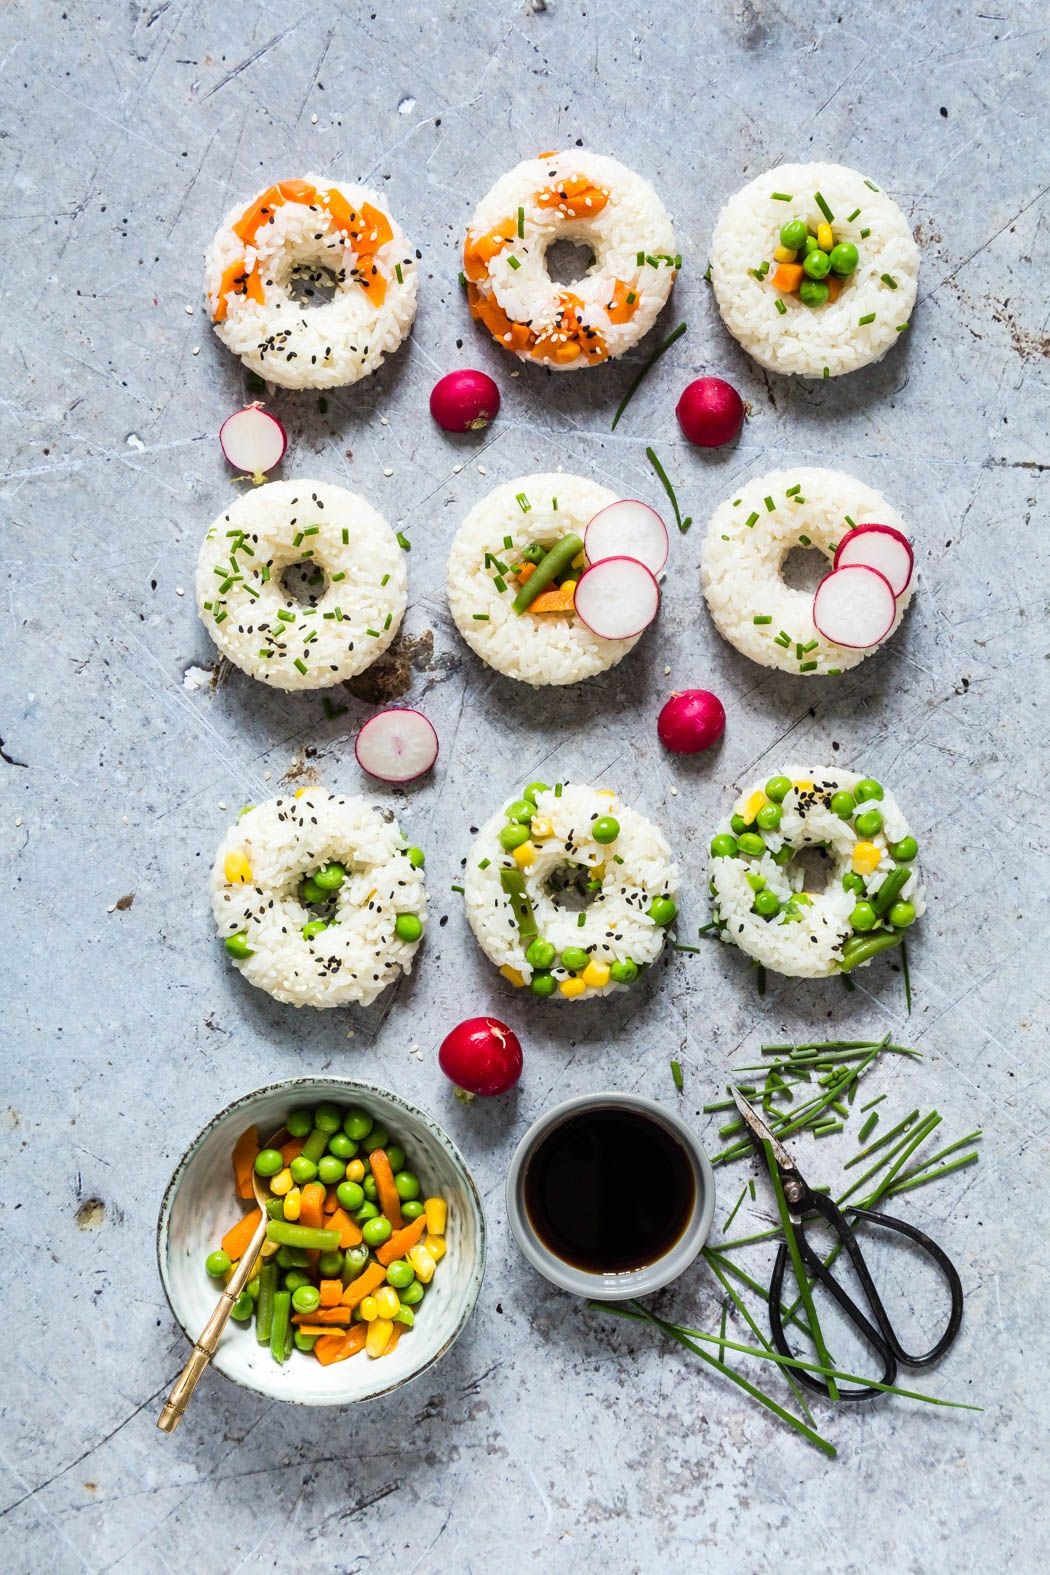 Vegetable Sushi Doughnuts A Simple Recipe Made With 5 Ings Mixed Vegetables Rice Maple Syrup Mirin